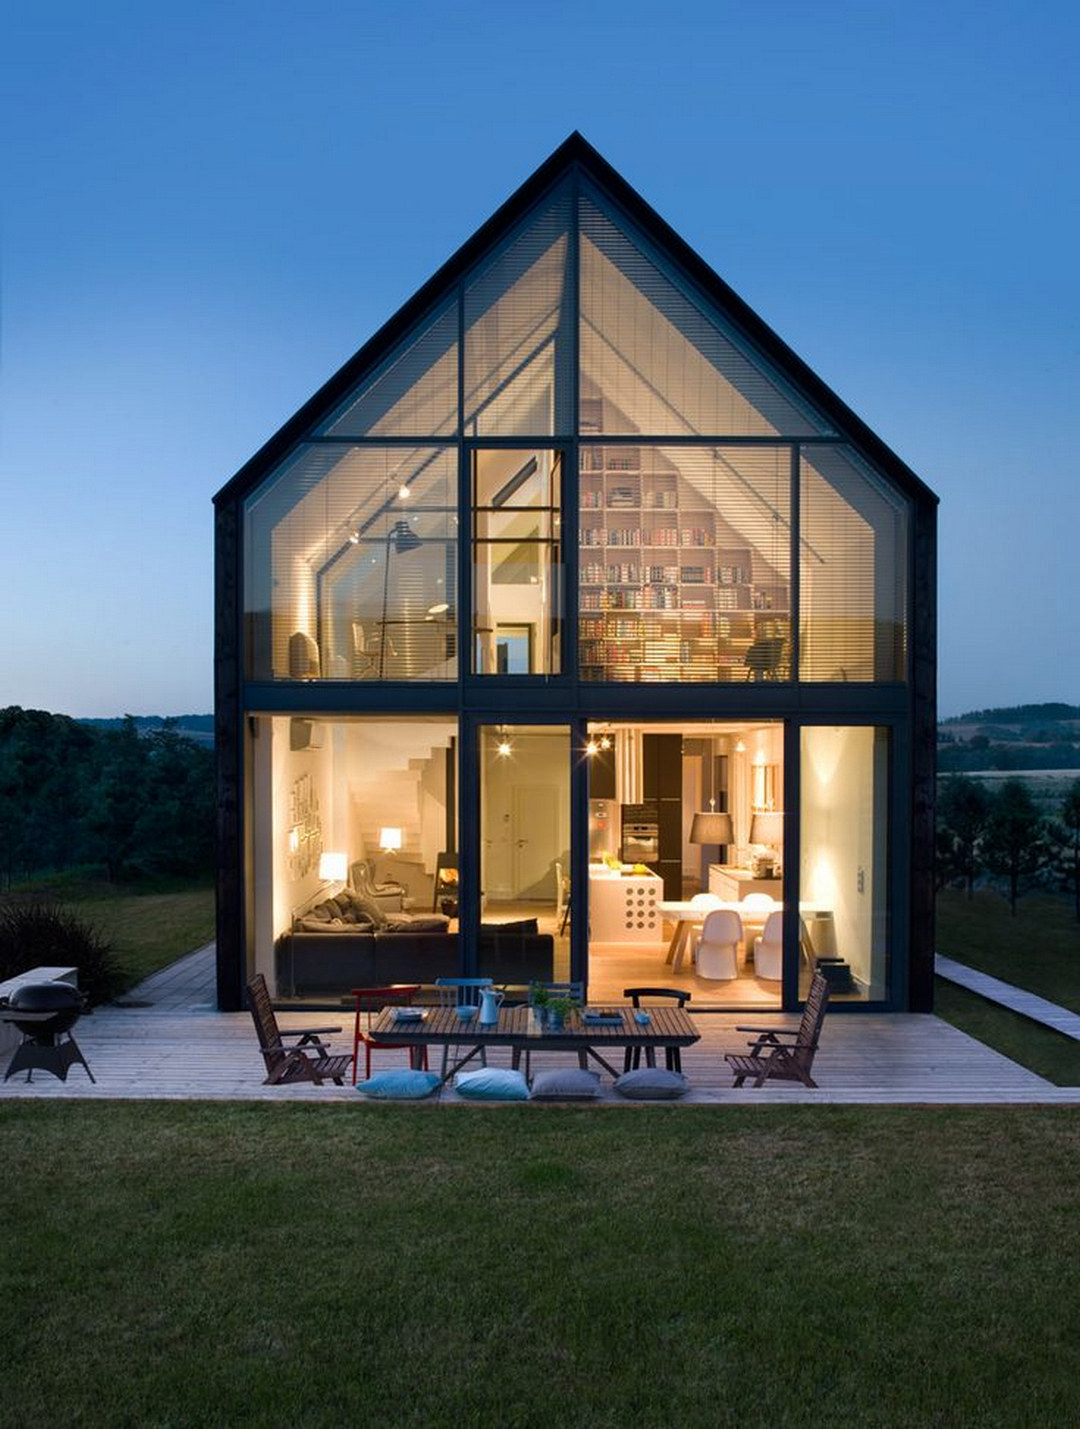 66 incredible house design inspirations style class and a bit in rh pinterest com